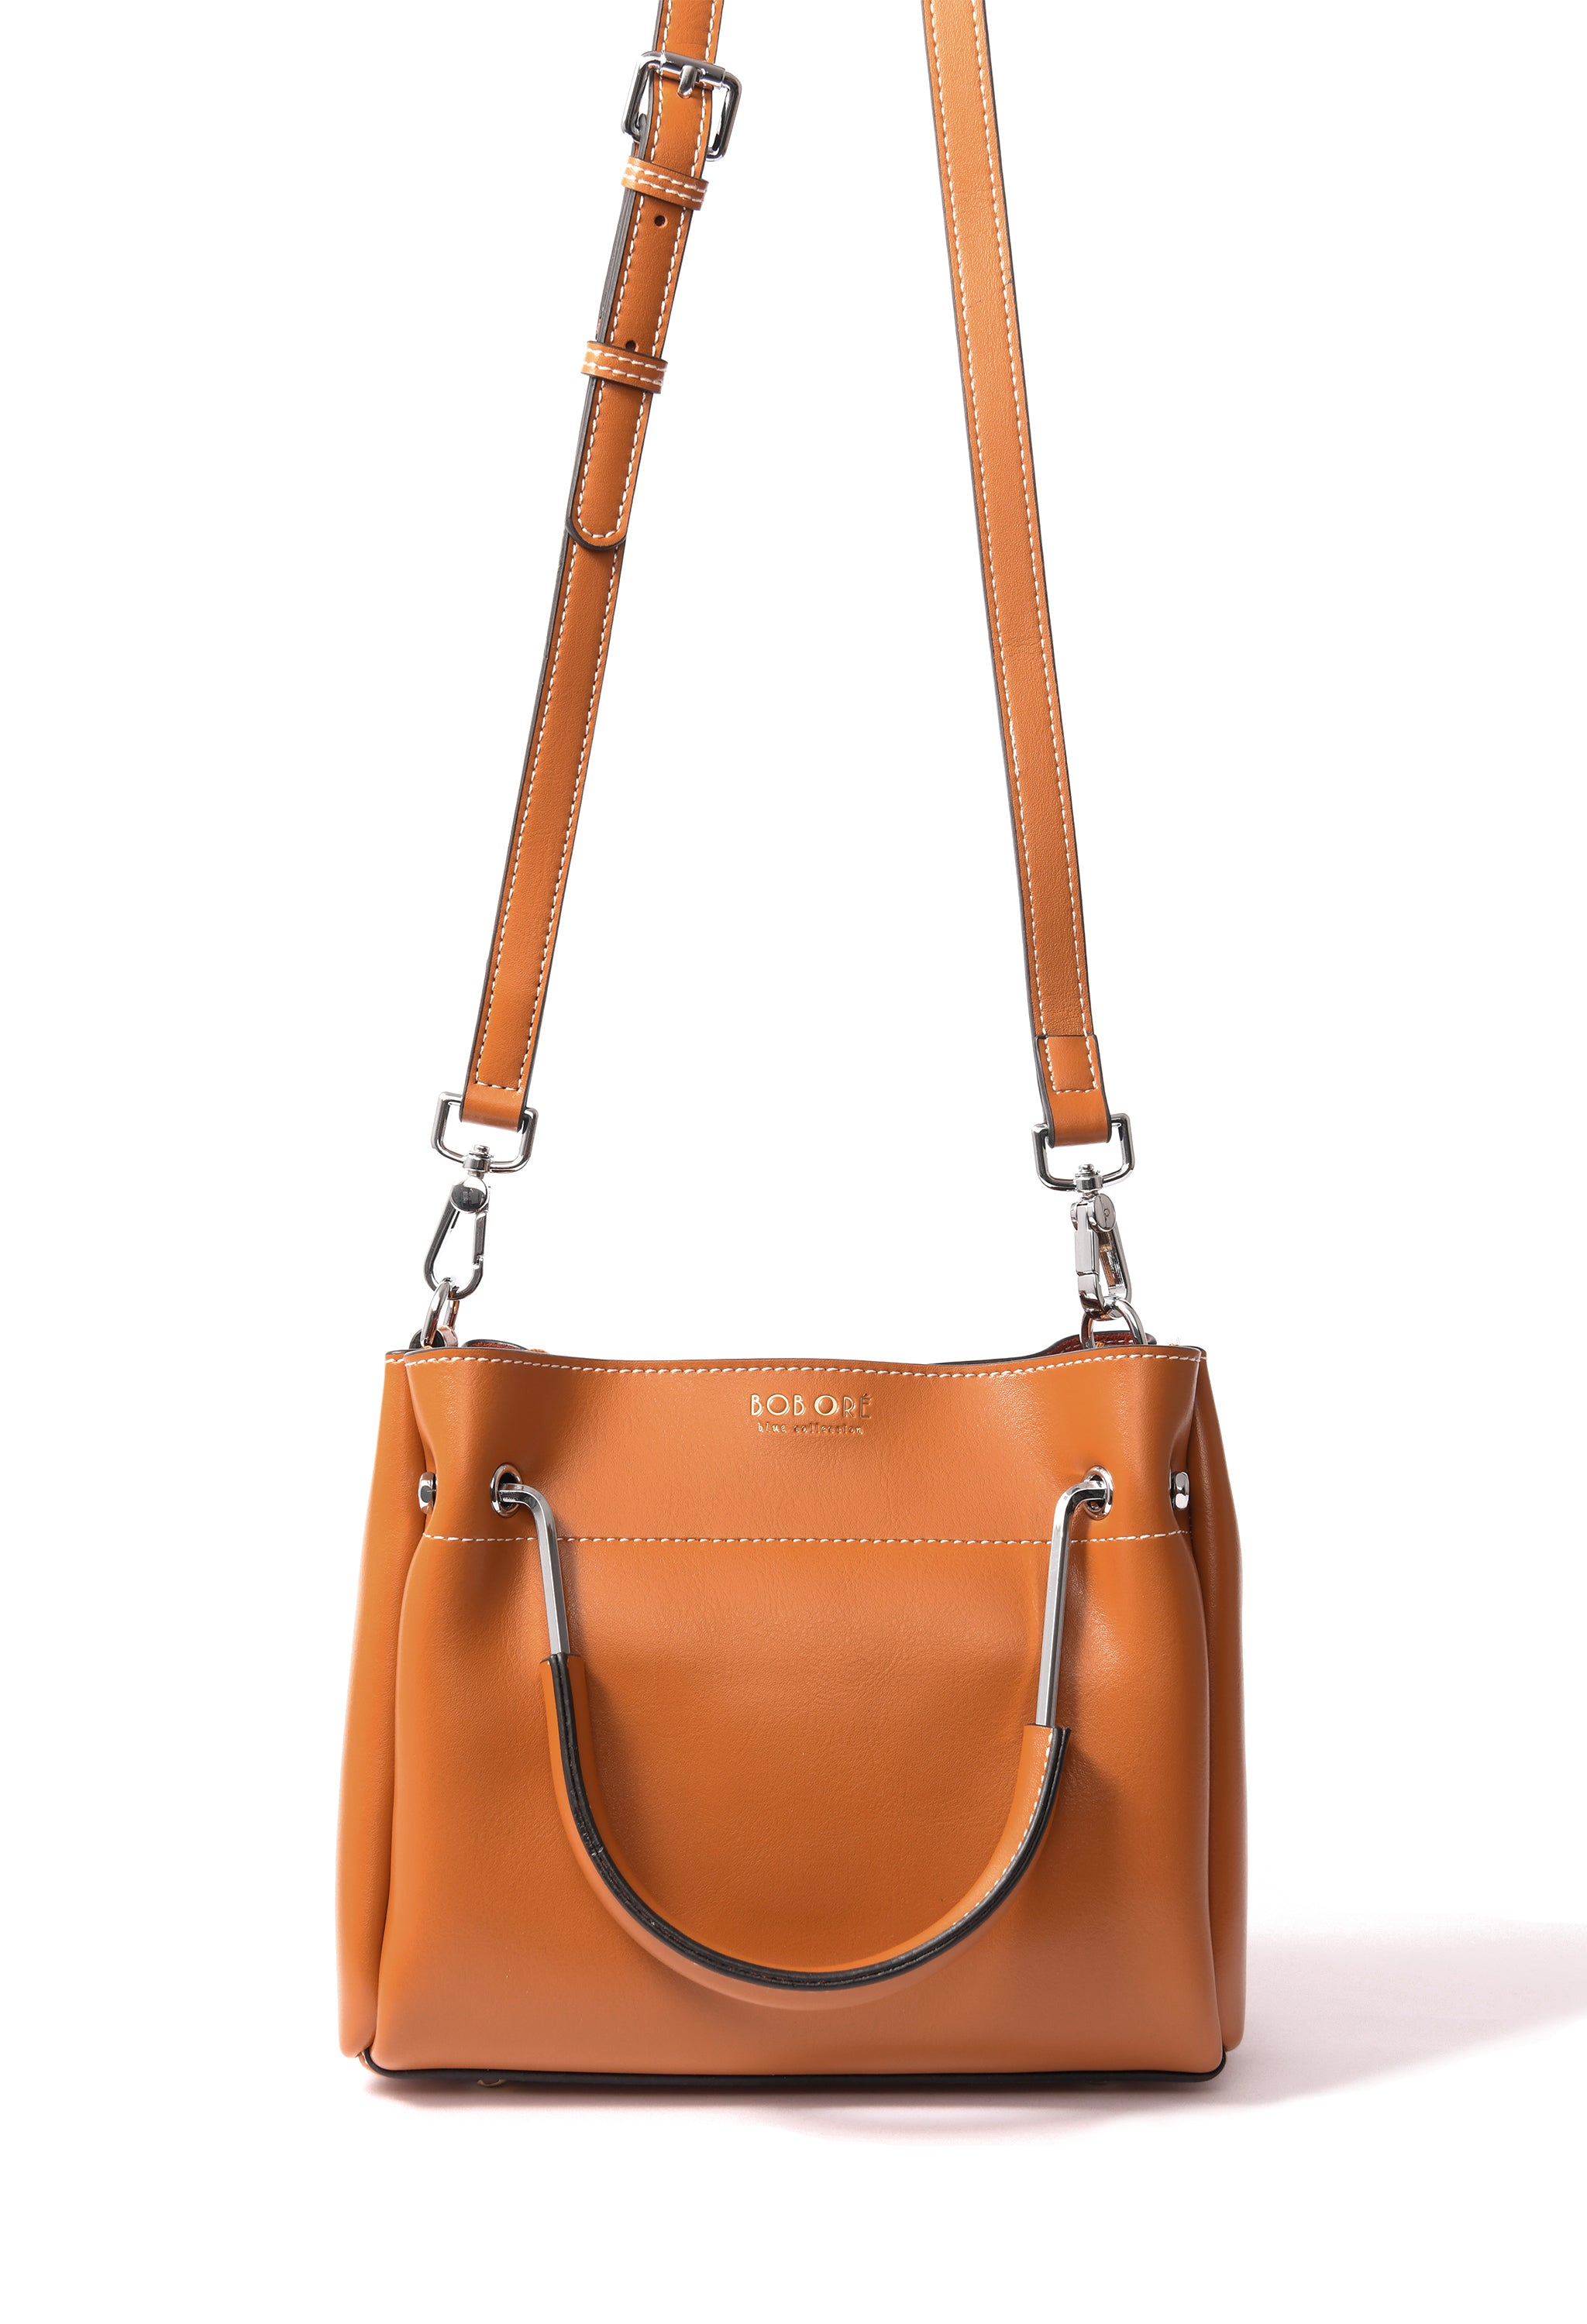 Jillian Bag in smooth leather, Brown